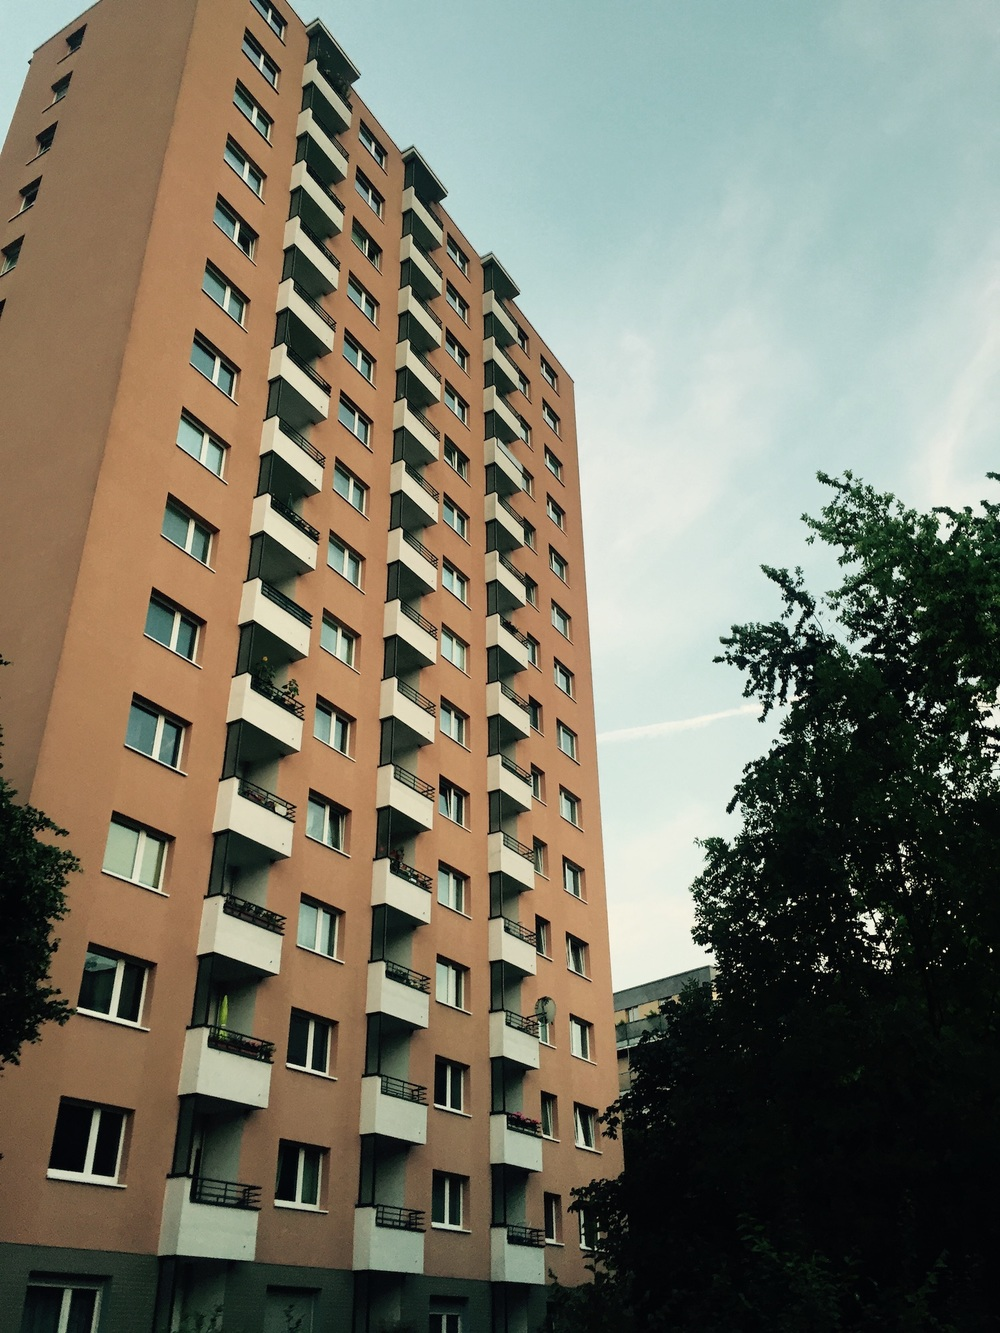 """Plattenbau""-style housing reflects a stifling one-size-fits-all approach to human needs. This photo was taken in the Berlin suburb of  Kreuzberg."